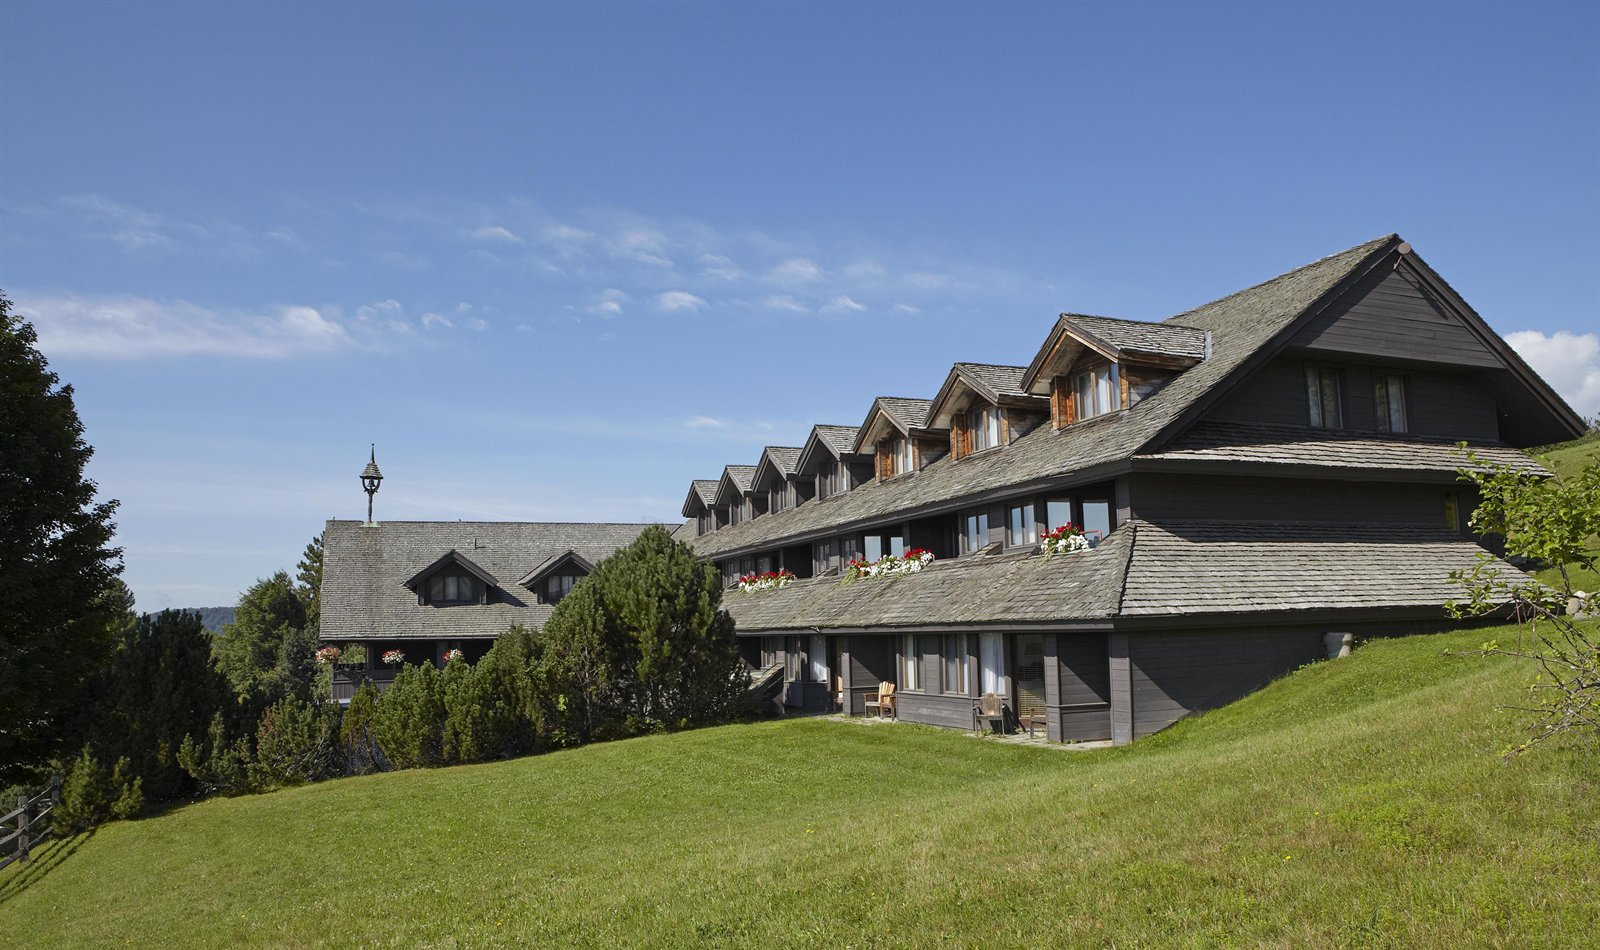 Tours in The Trapp Family Lodge in Stowe, VT